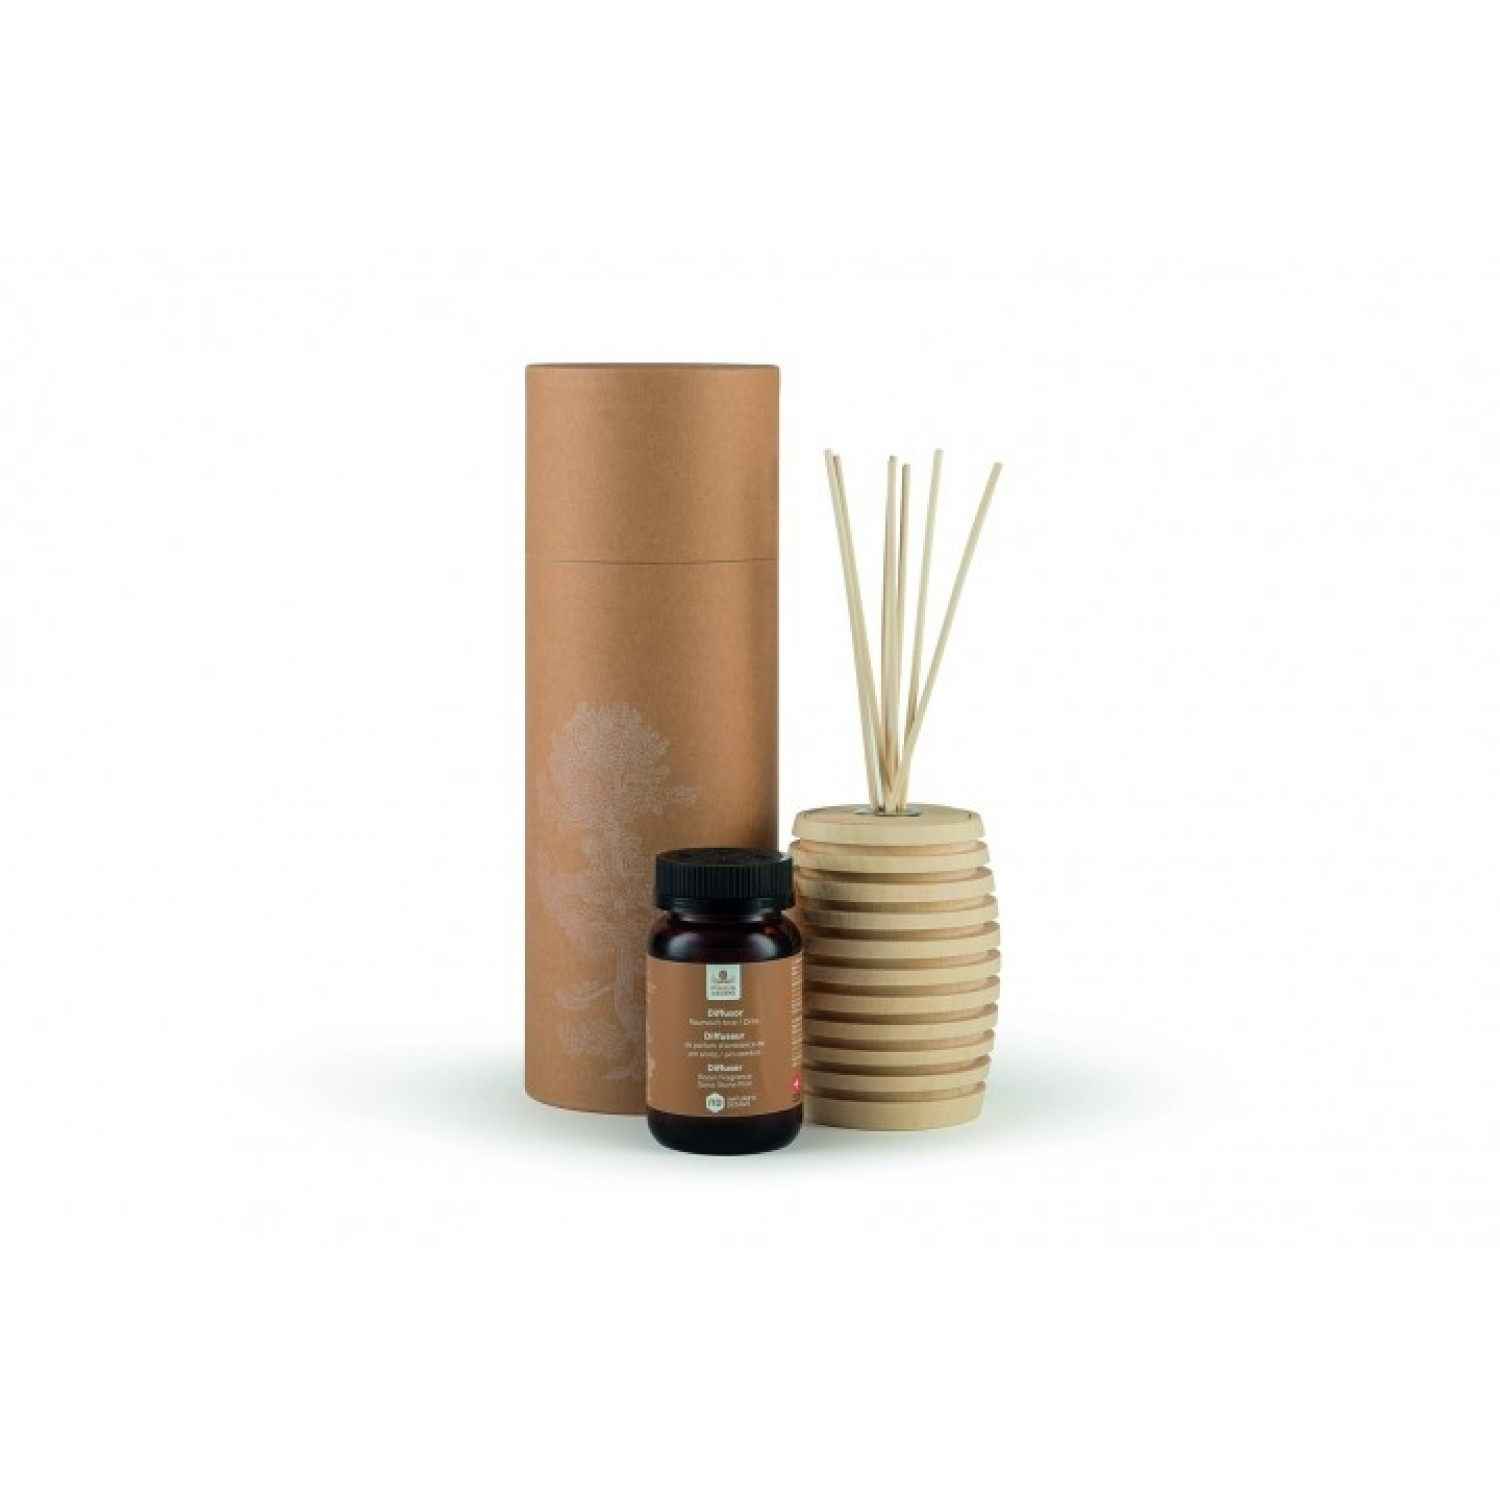 Nature's Design Pinus Cembra Diffusor inkl. Duftmischung